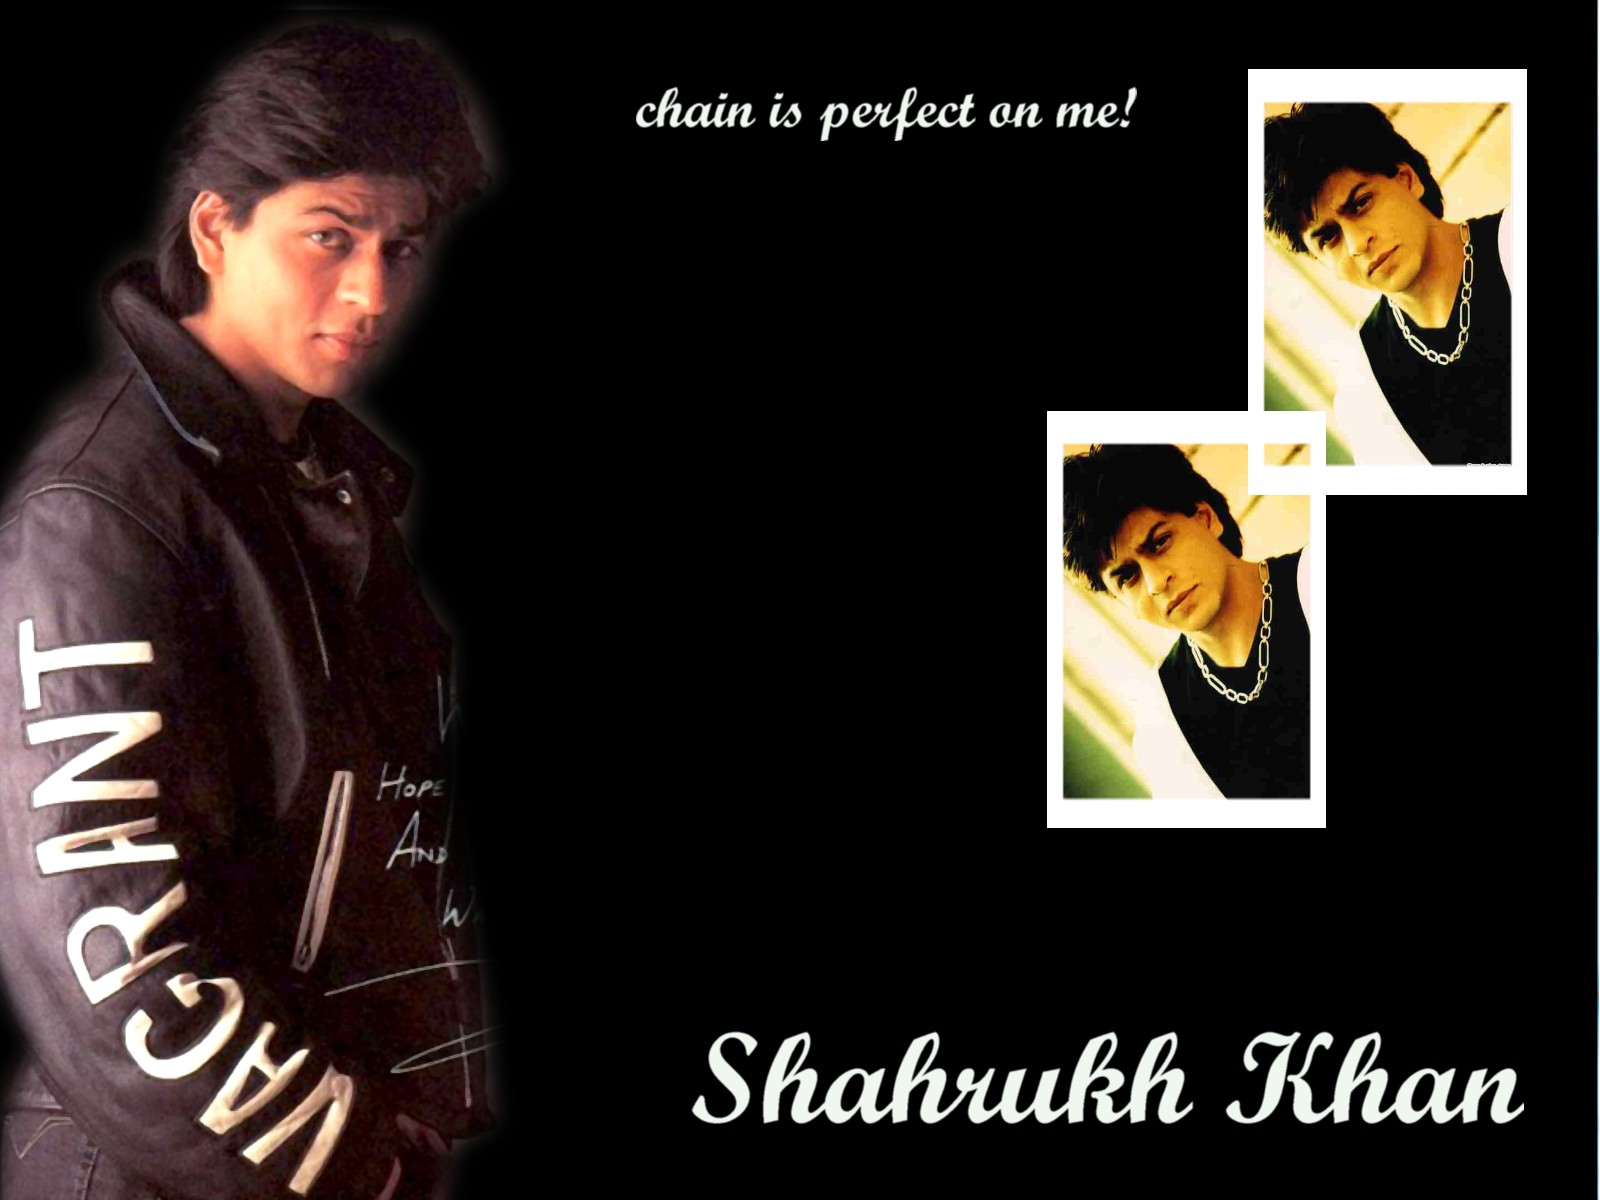 Srk wallpapers in ddlj hd wallon - Shahrukh khan cool wallpaper ...